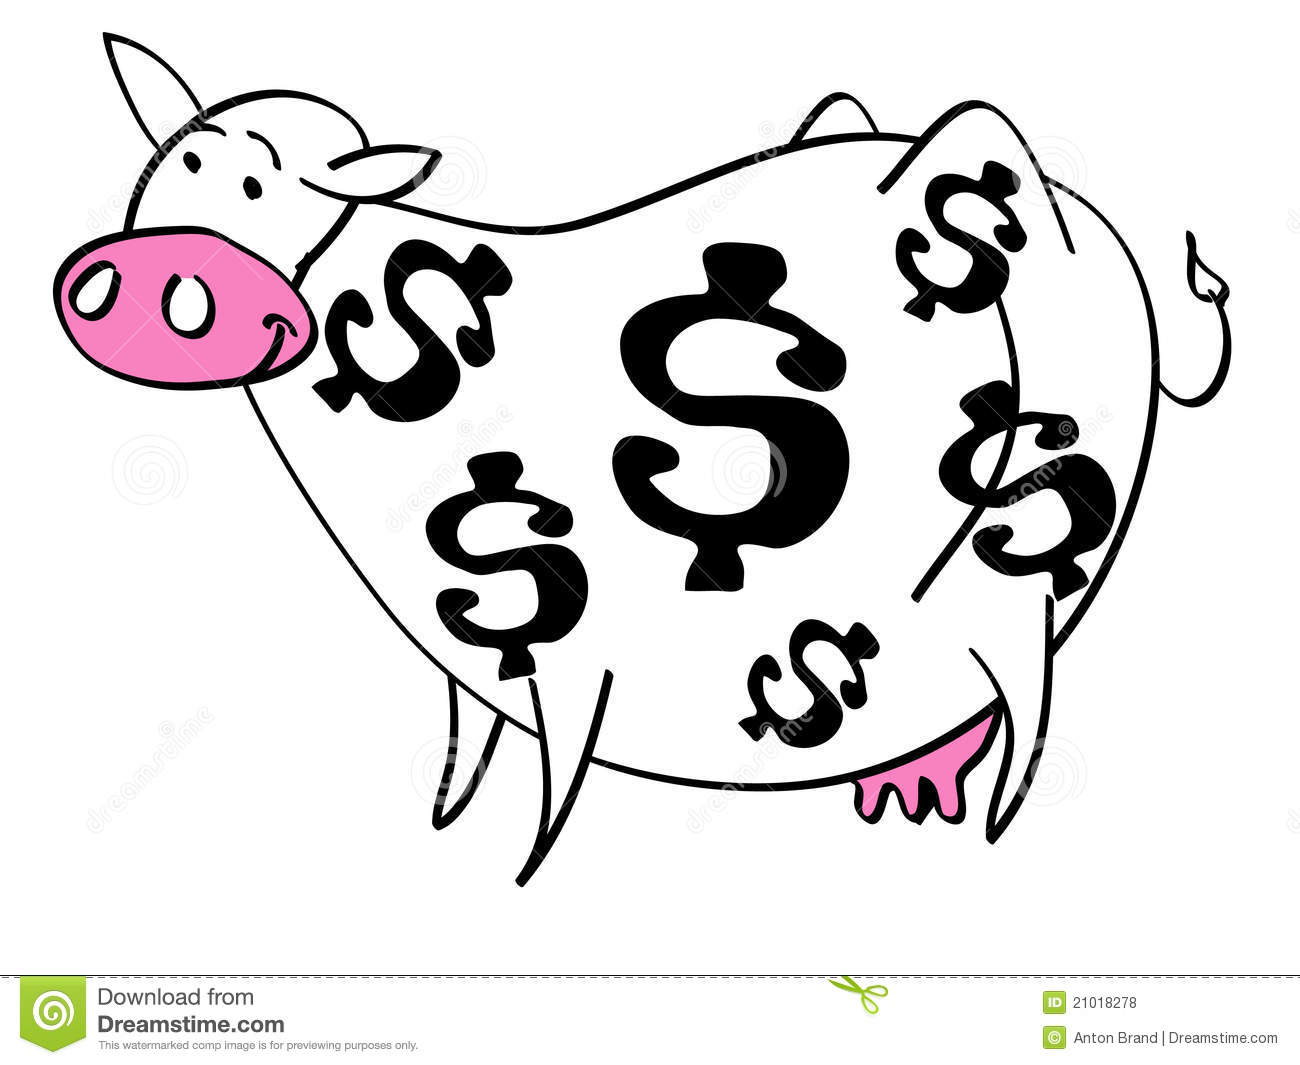 Cartoon Of Cash Cow With Dollar Signs On Her Coat Stock